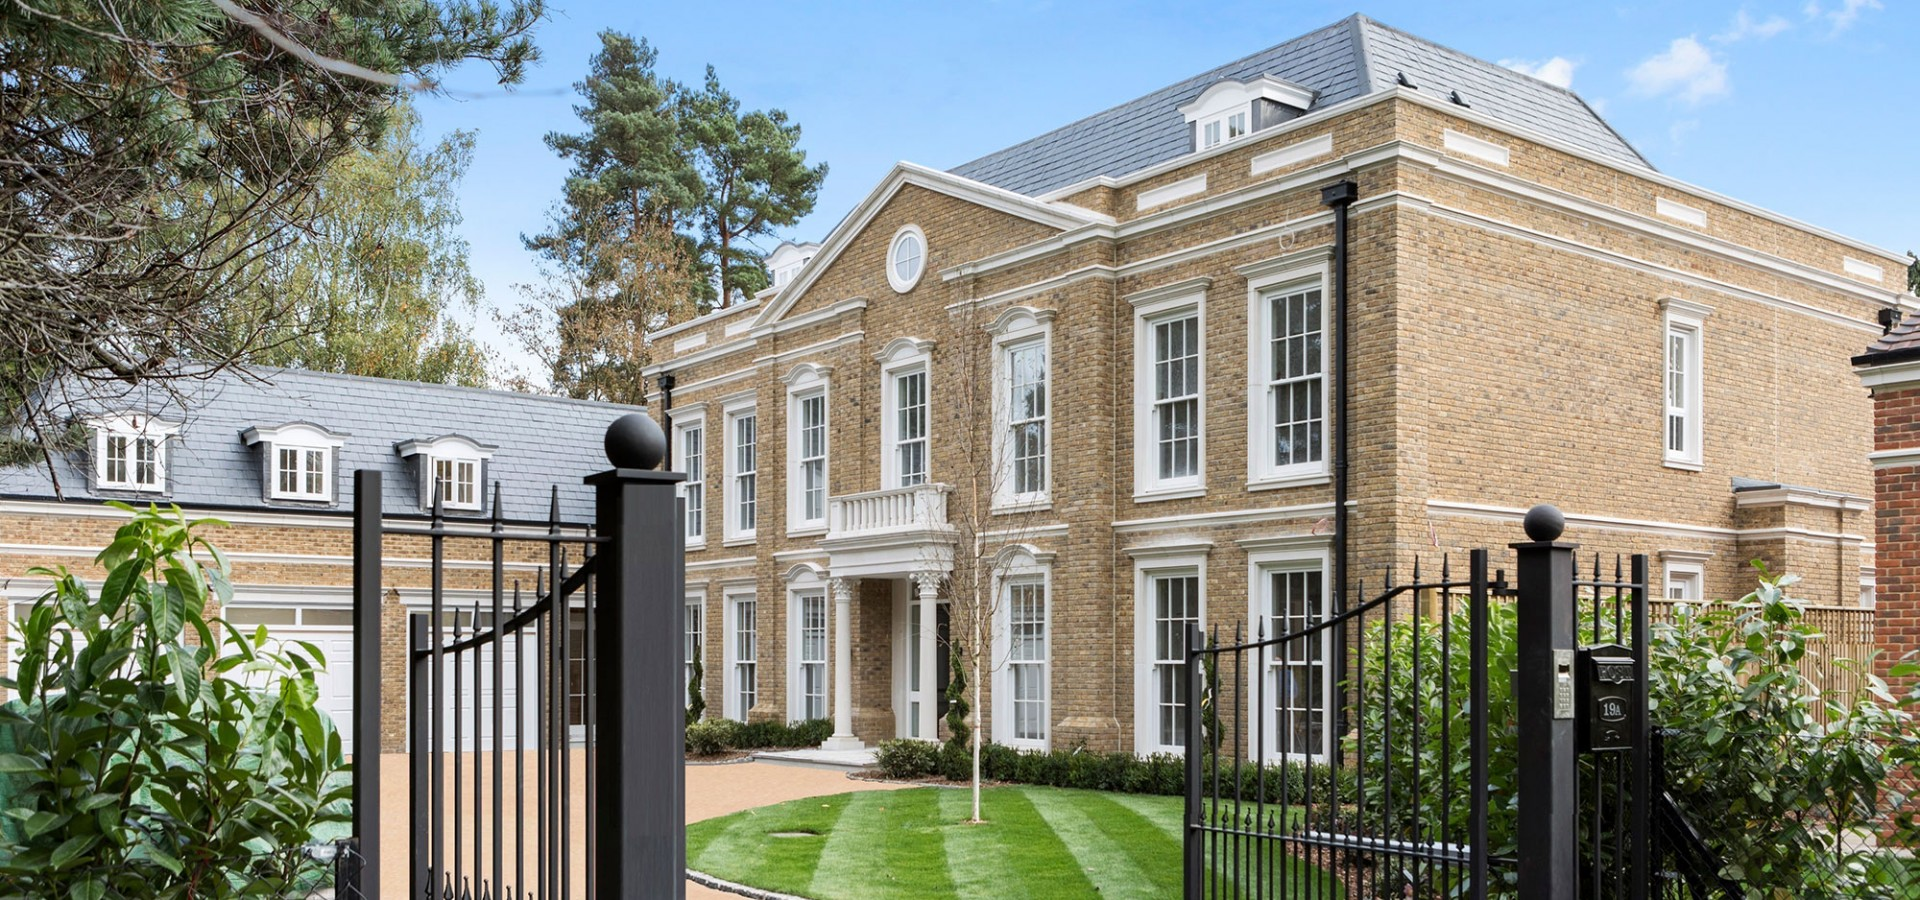 Luxury new homes octagon sell 6 bedroom mansion on the for 6 bedroom homes